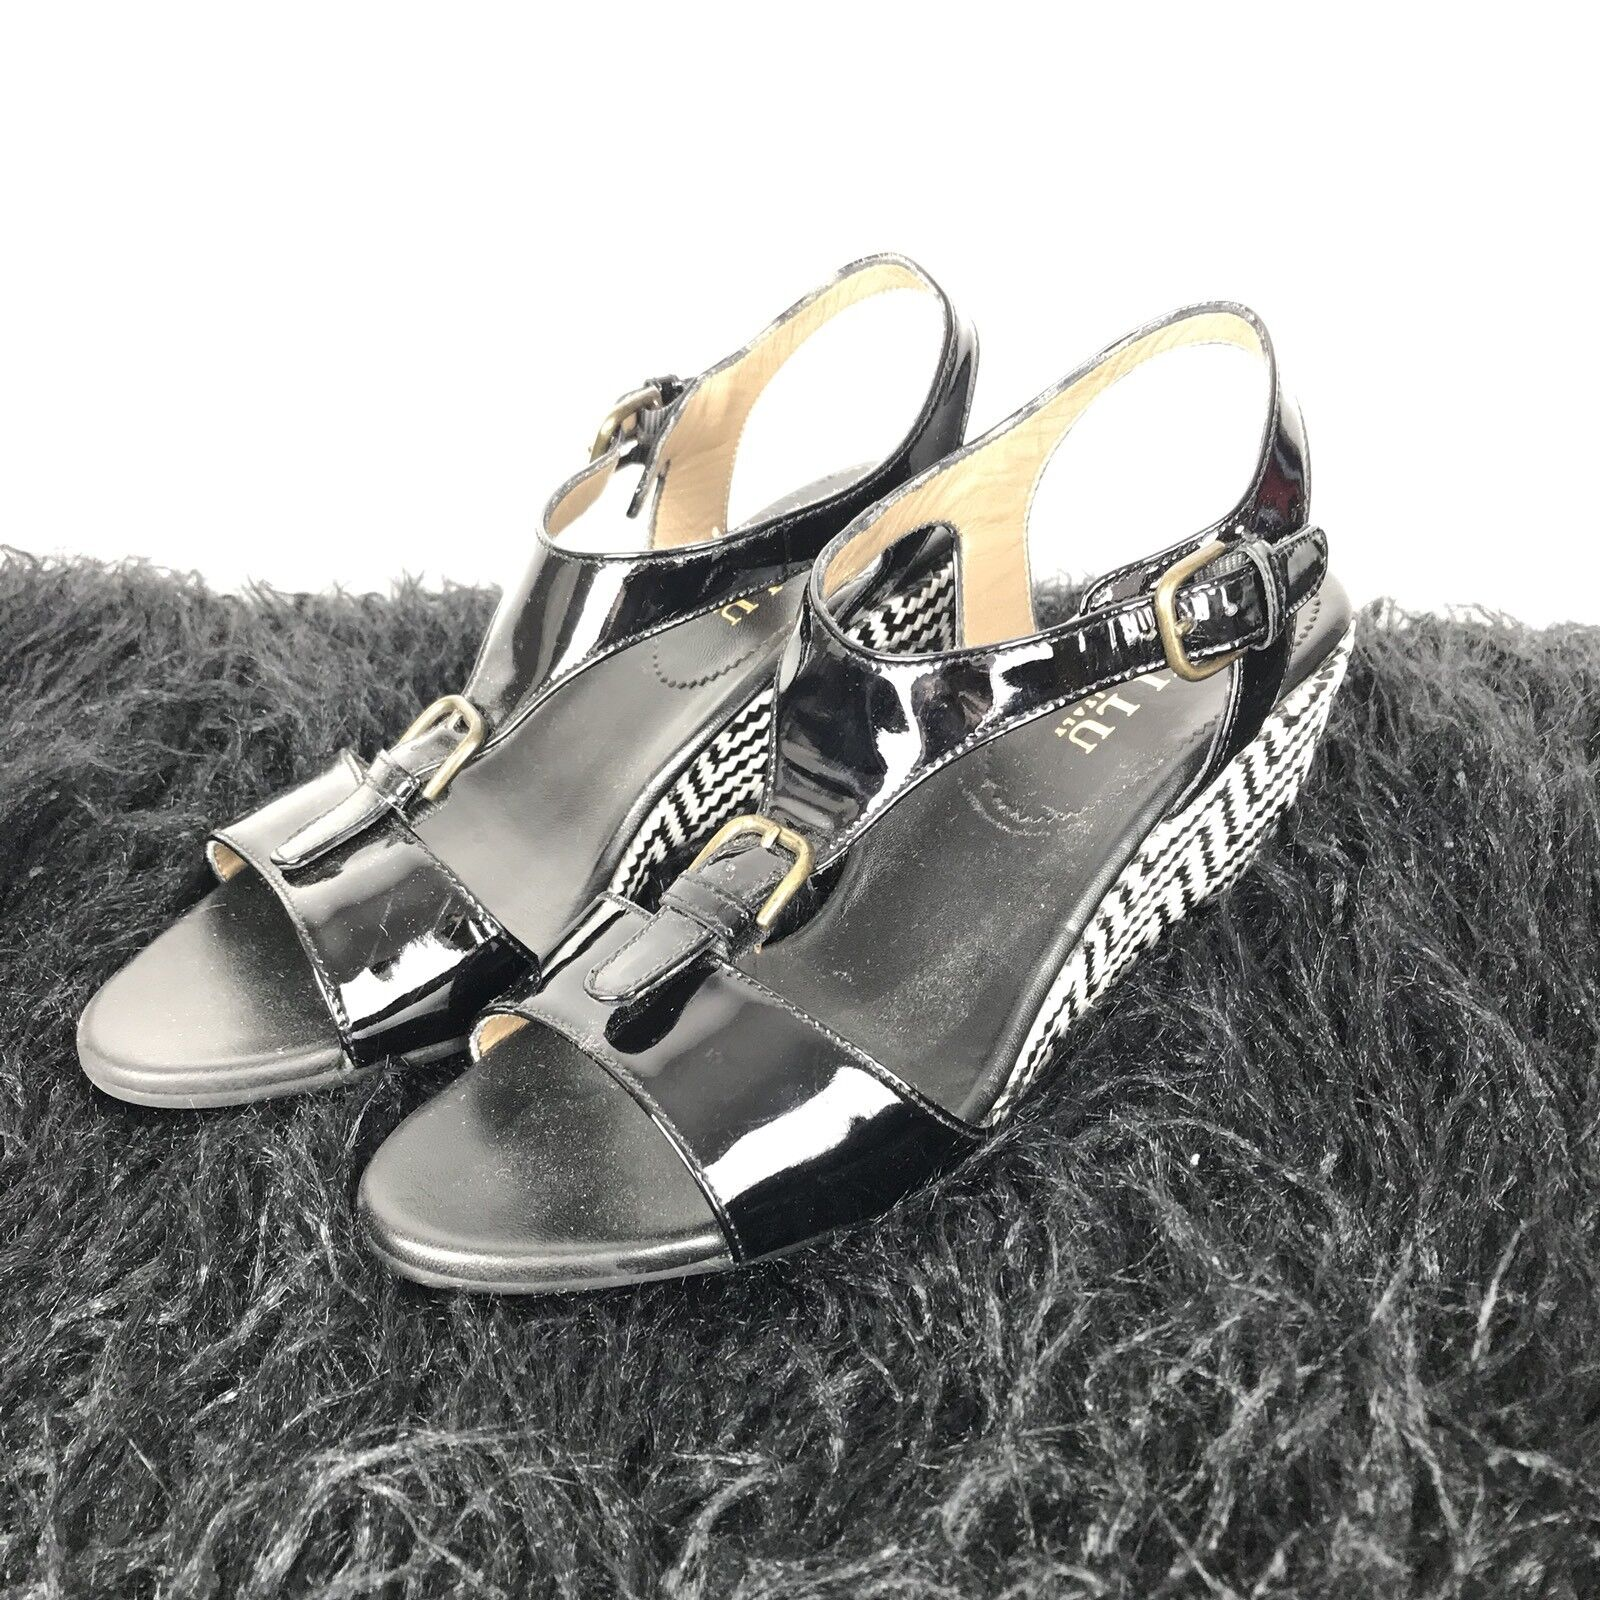 Anyi Lu Womens Wedge Sandals Size 38 Woven Pattern Black Patent Leather Buckle